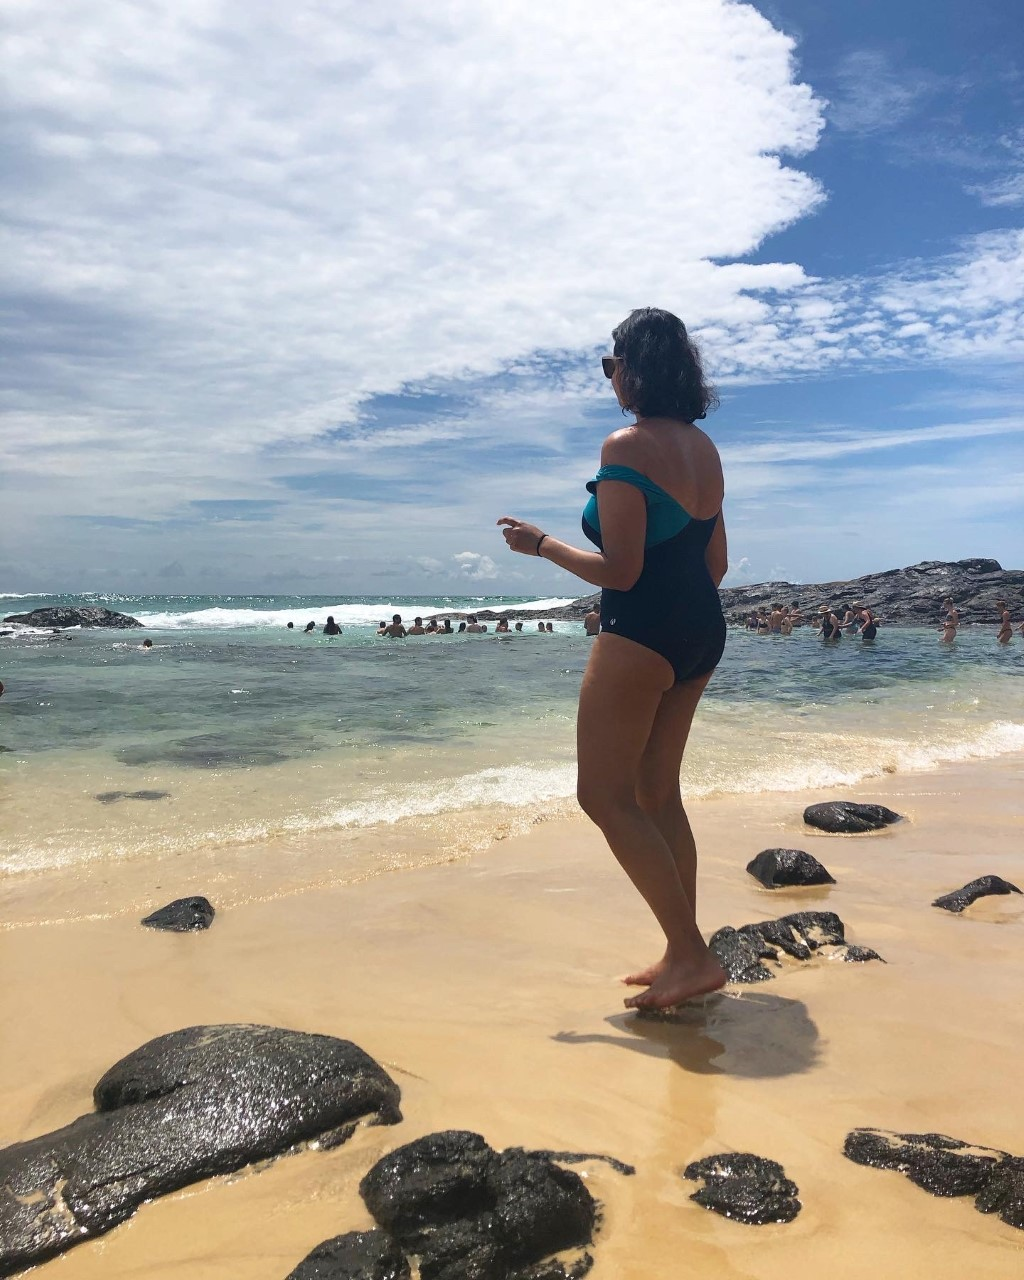 Backpacking Australia: Private Room Upgrades and Controversial Fraser Island Opinion